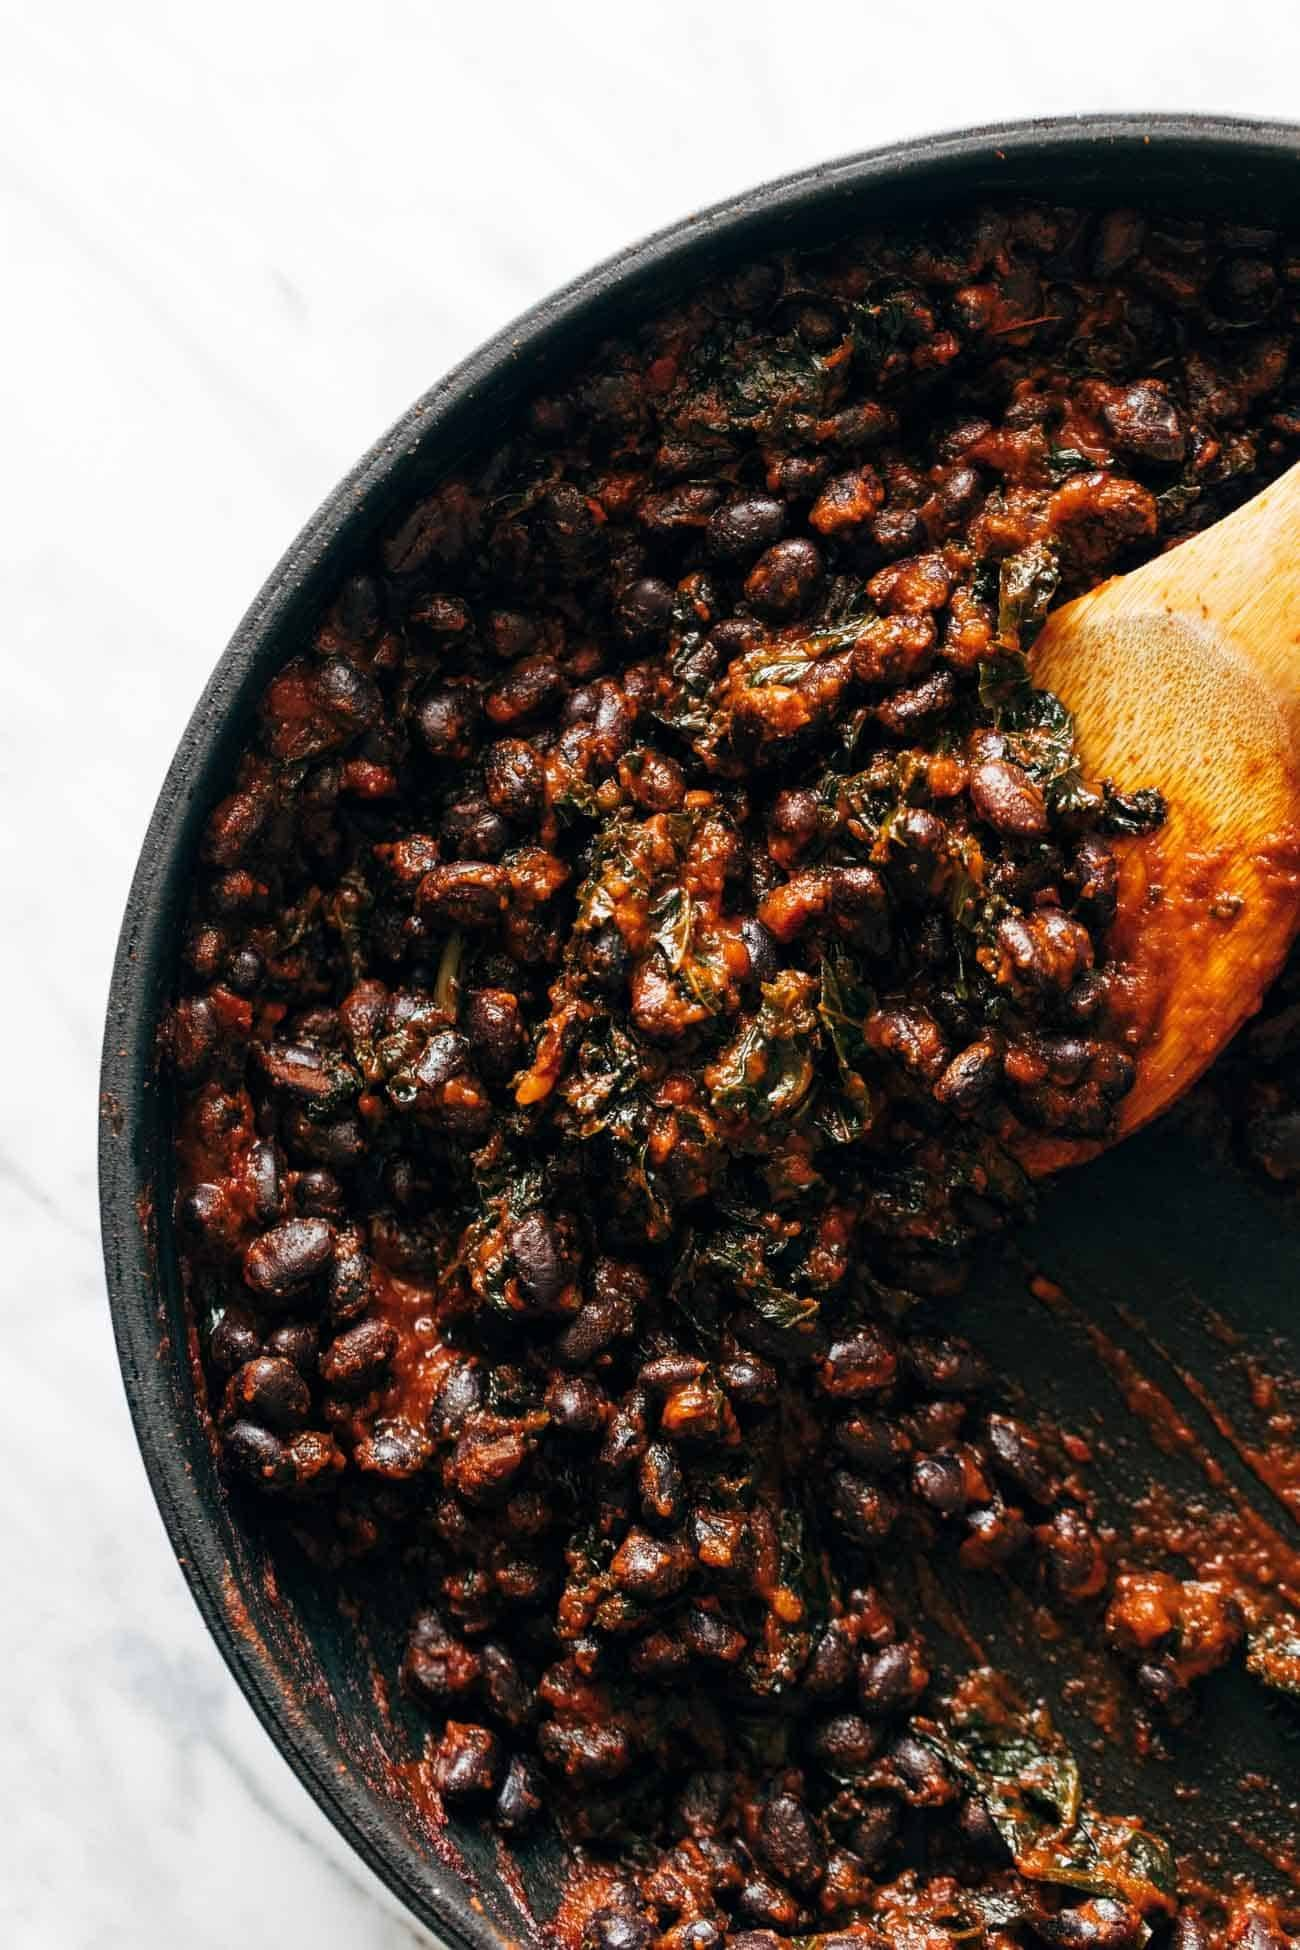 Smoky black bean filling with greens being stirred around in a pan with a wooden spoon.